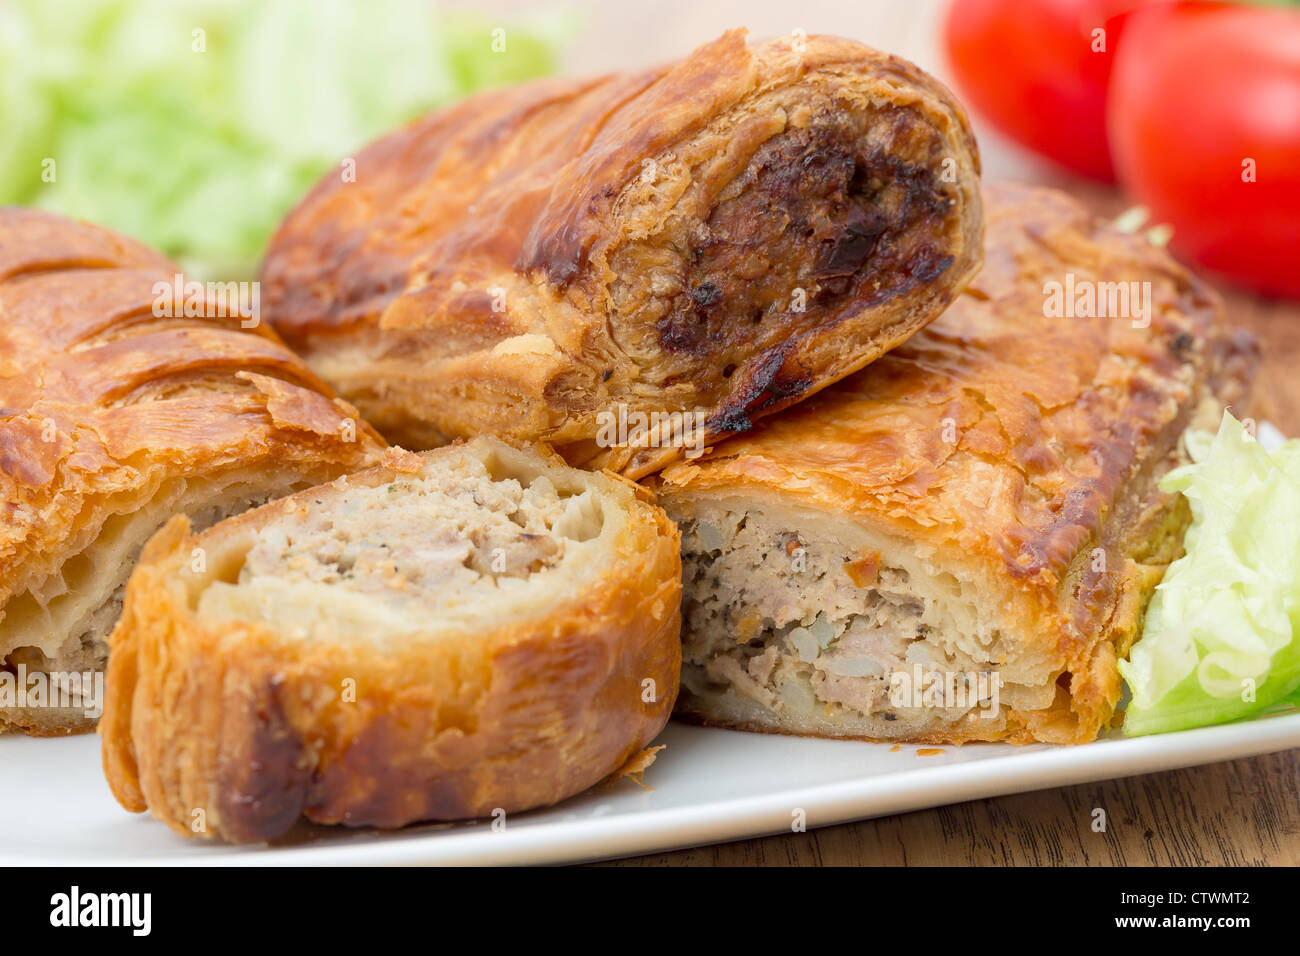 A plate of home made sausage rolls on a white plate - studio shot with a shallow depth of field - Stock Image